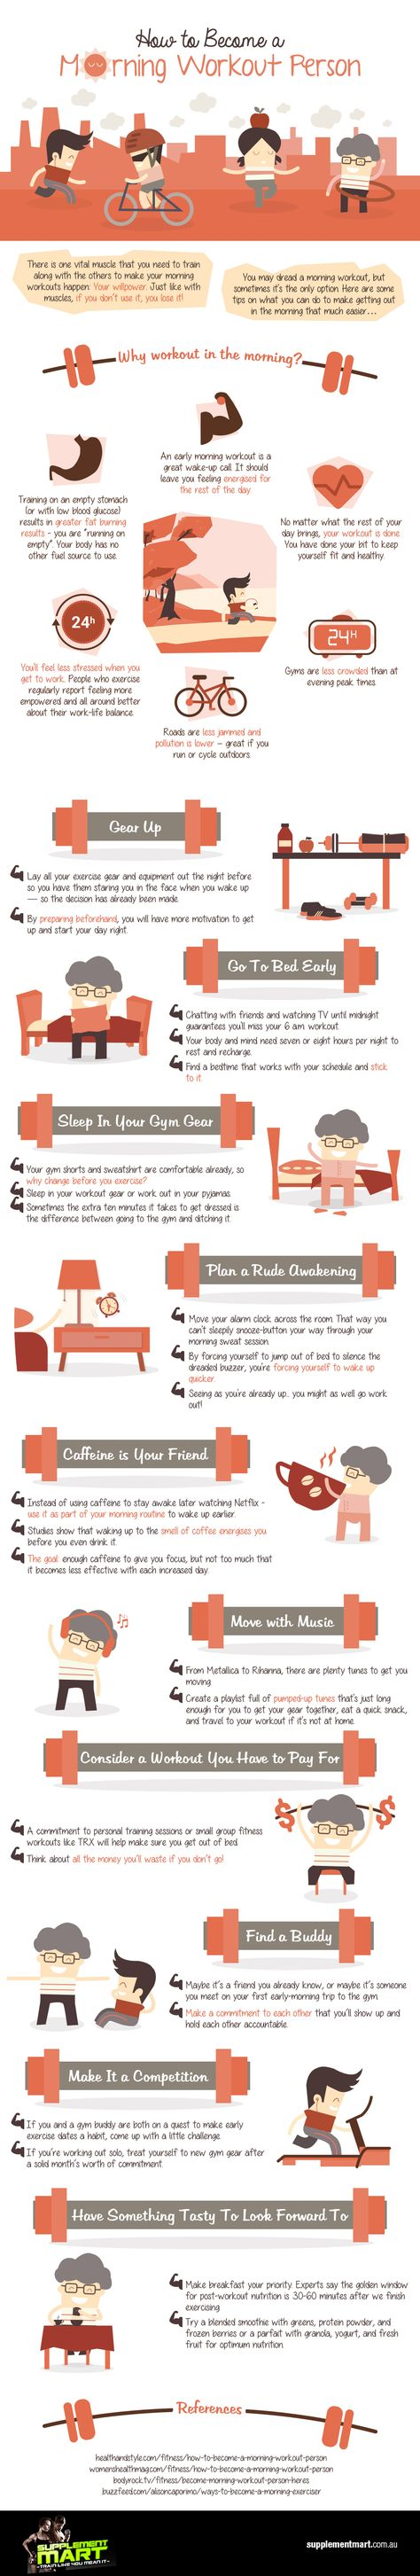 10 Awesome Ways to Become a Morning Workout Person - Infographic - UrbanNaturale